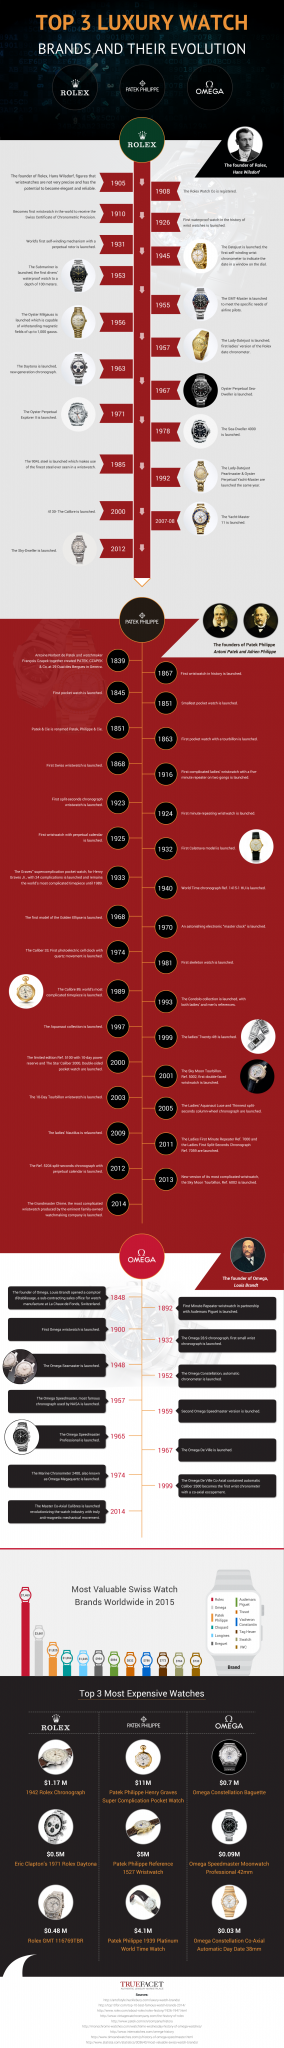 infographic showing history of three luxury watch brands, Rolex, Patek Philippe, ans Omega. Describes chronological events from their foundation to today.